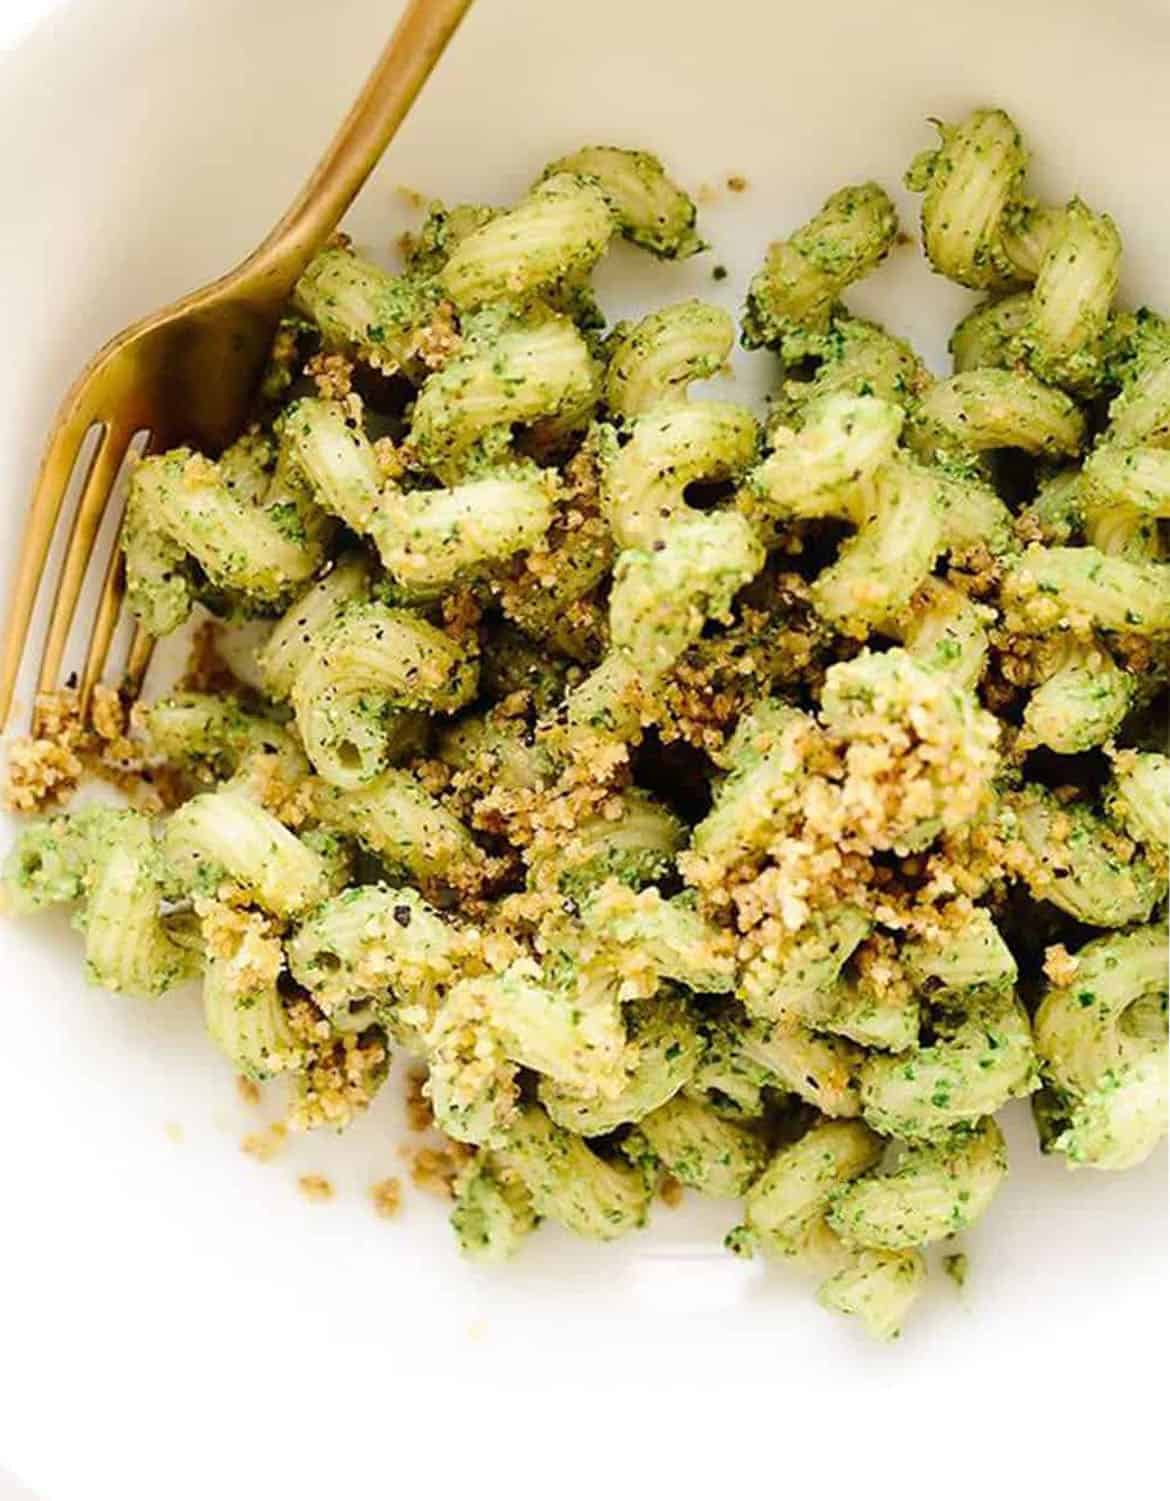 Vegan walnut pesto cavatappi on a white bowl with a golden fork - Blissful Basil